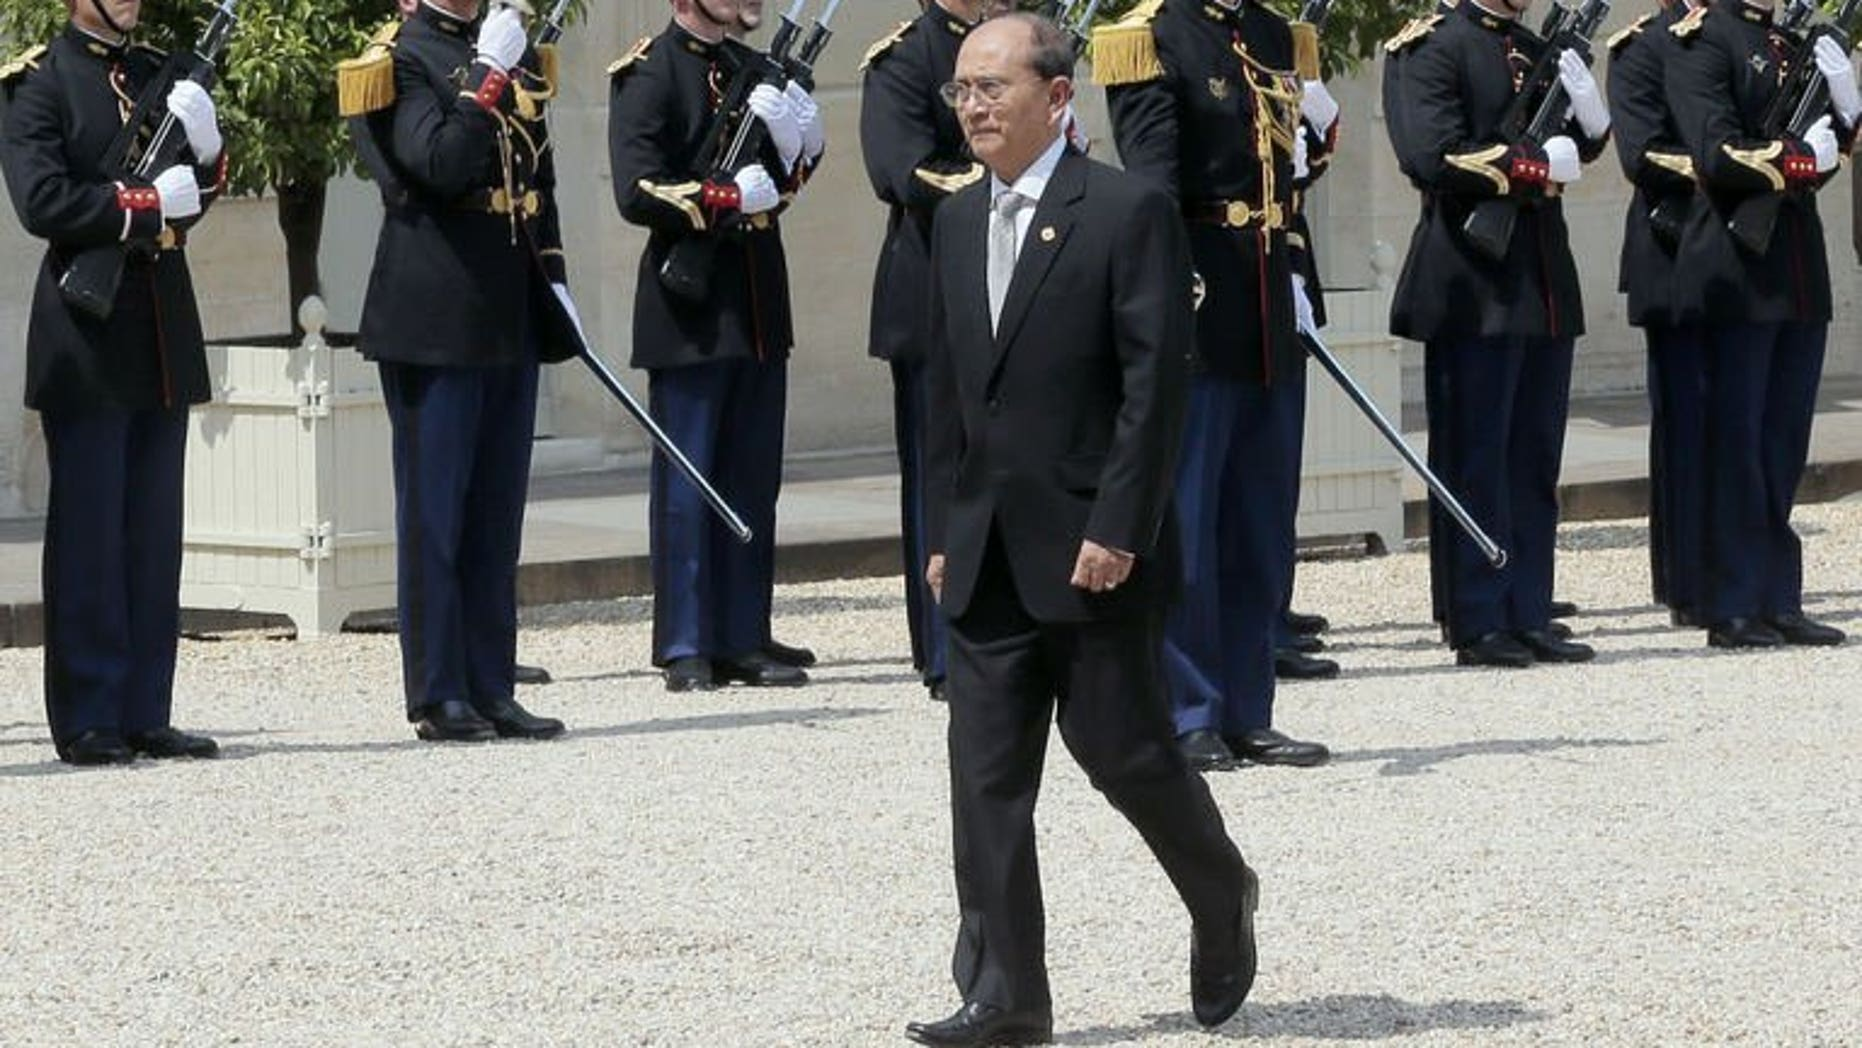 """Myanmar President Thein Sein passes by the French Republican Guards at the Elysee presidential palace on July 17, 2013 in Paris. Sein denied on Friday accusations of ethnic cleansing against Rohingya Muslims, saying the claims were part of a """"smear campaign"""" against his government."""